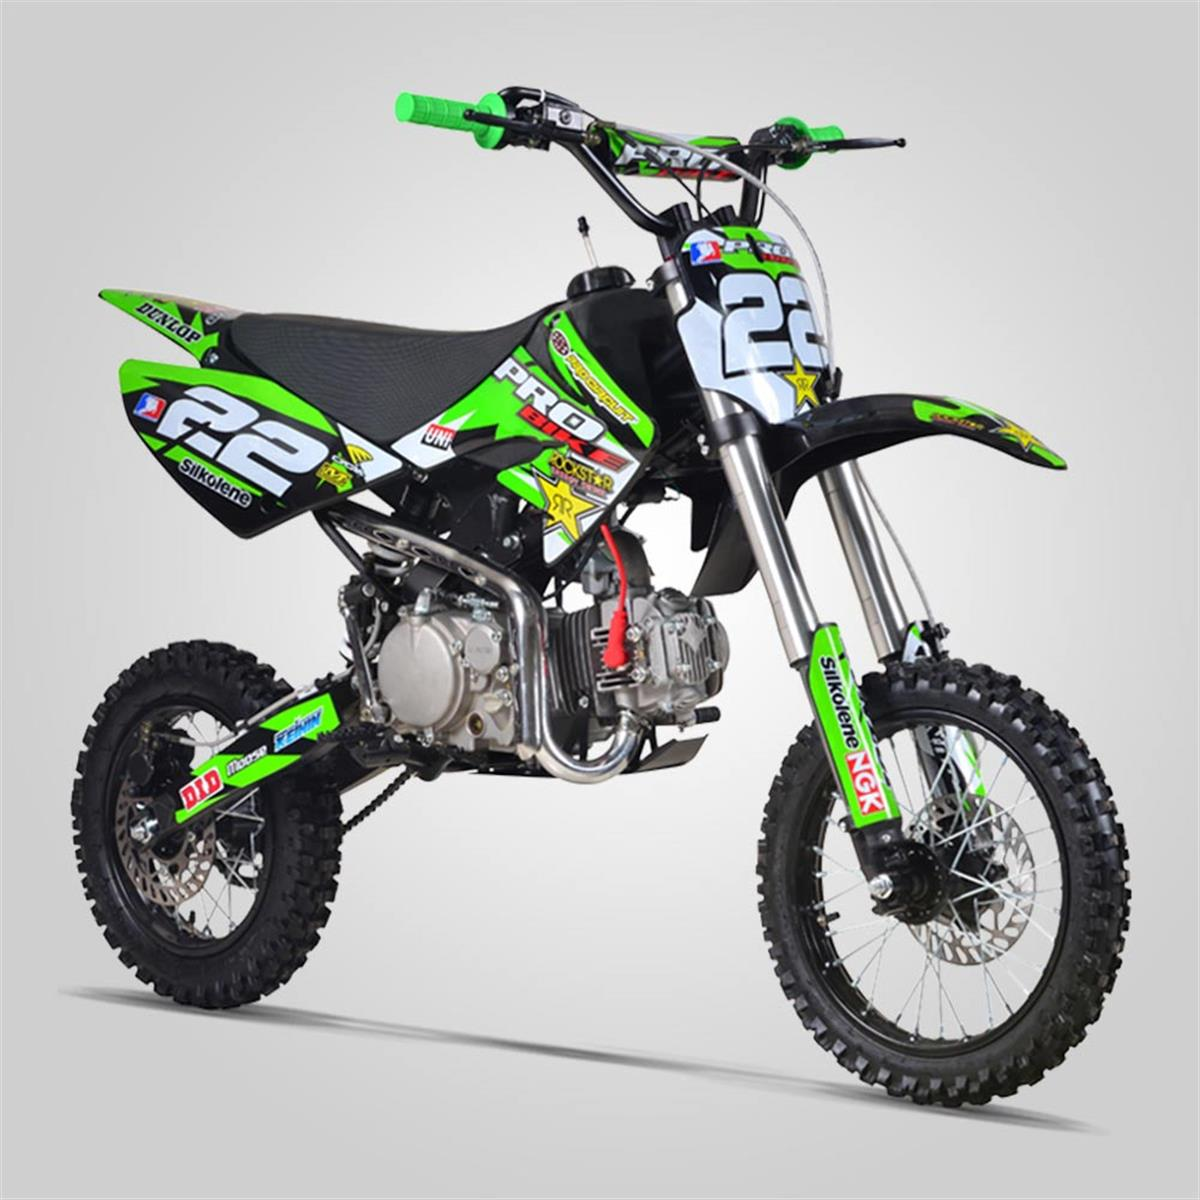 dirt bike probike 150cc s petites roues 12 14 smallmx dirt bike pit bike quads minimoto. Black Bedroom Furniture Sets. Home Design Ideas